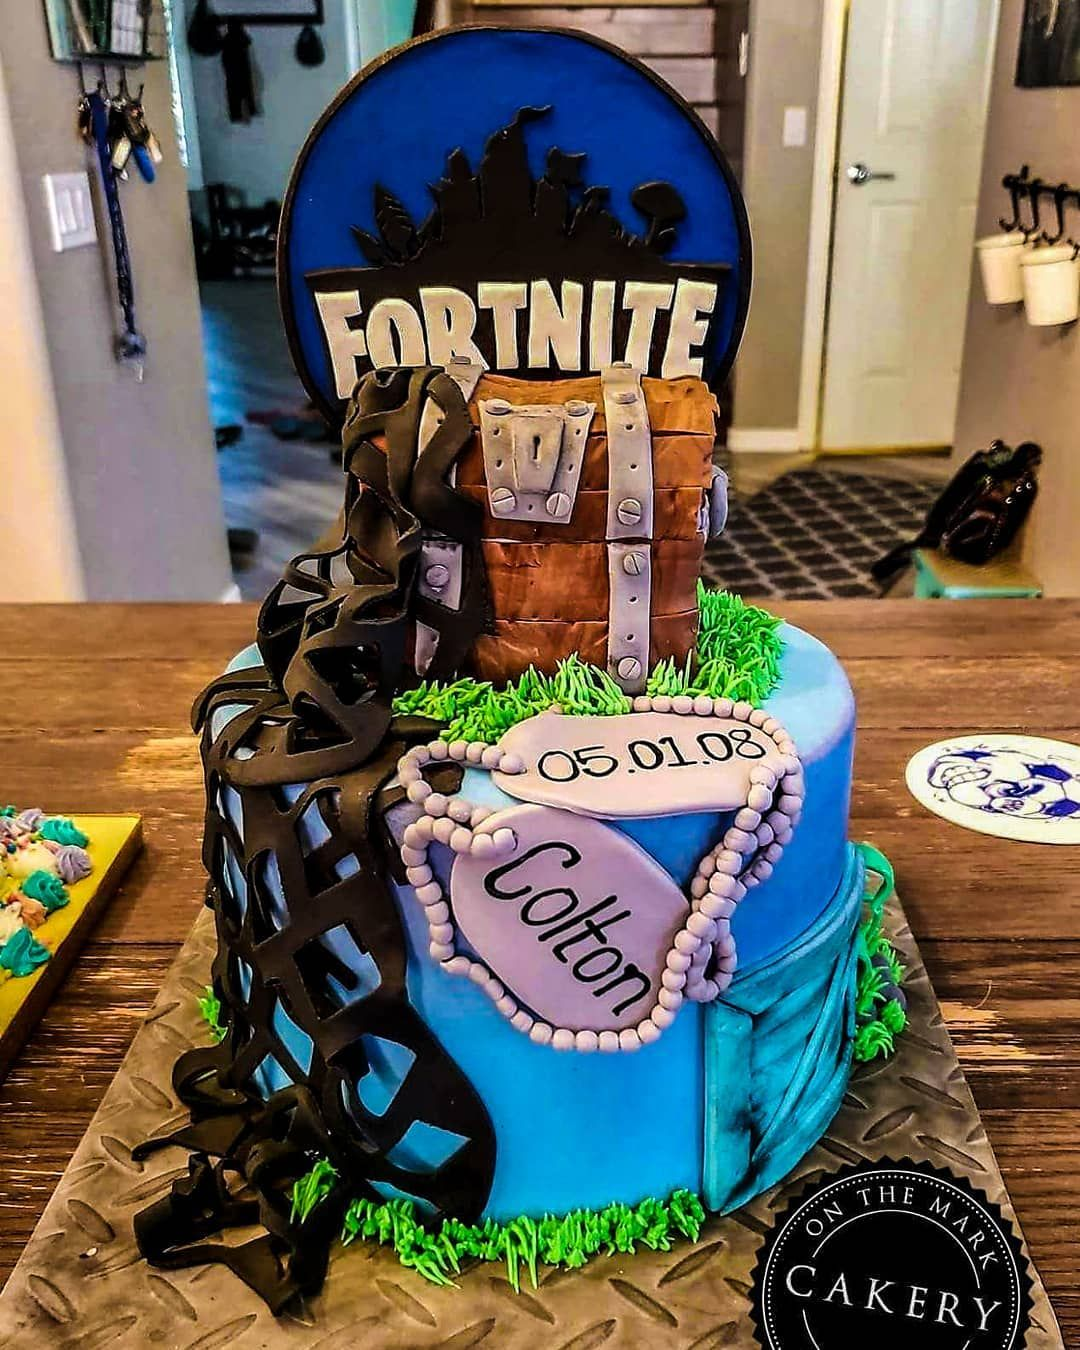 Swell Fortnite Inspired Birthday Cake Perfect For Your Gamer Any Age Funny Birthday Cards Online Inifodamsfinfo